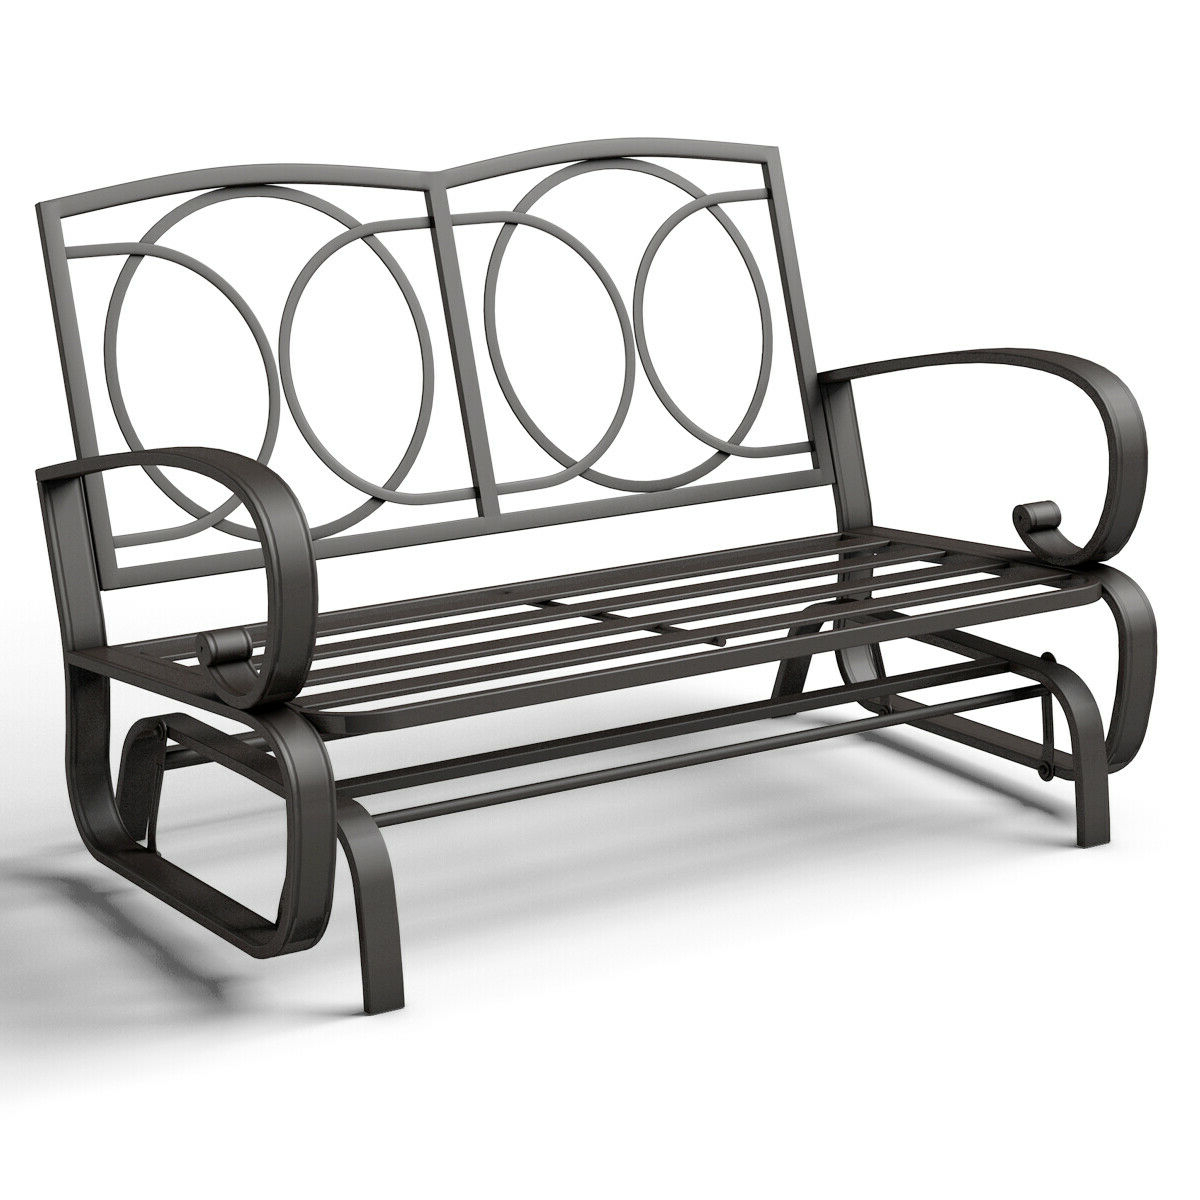 Most Recently Released Costway Glider Outdoor Patio Rocking Bench Loveseat For Black Steel Patio Swing Glider Benches Powder Coated (View 9 of 25)